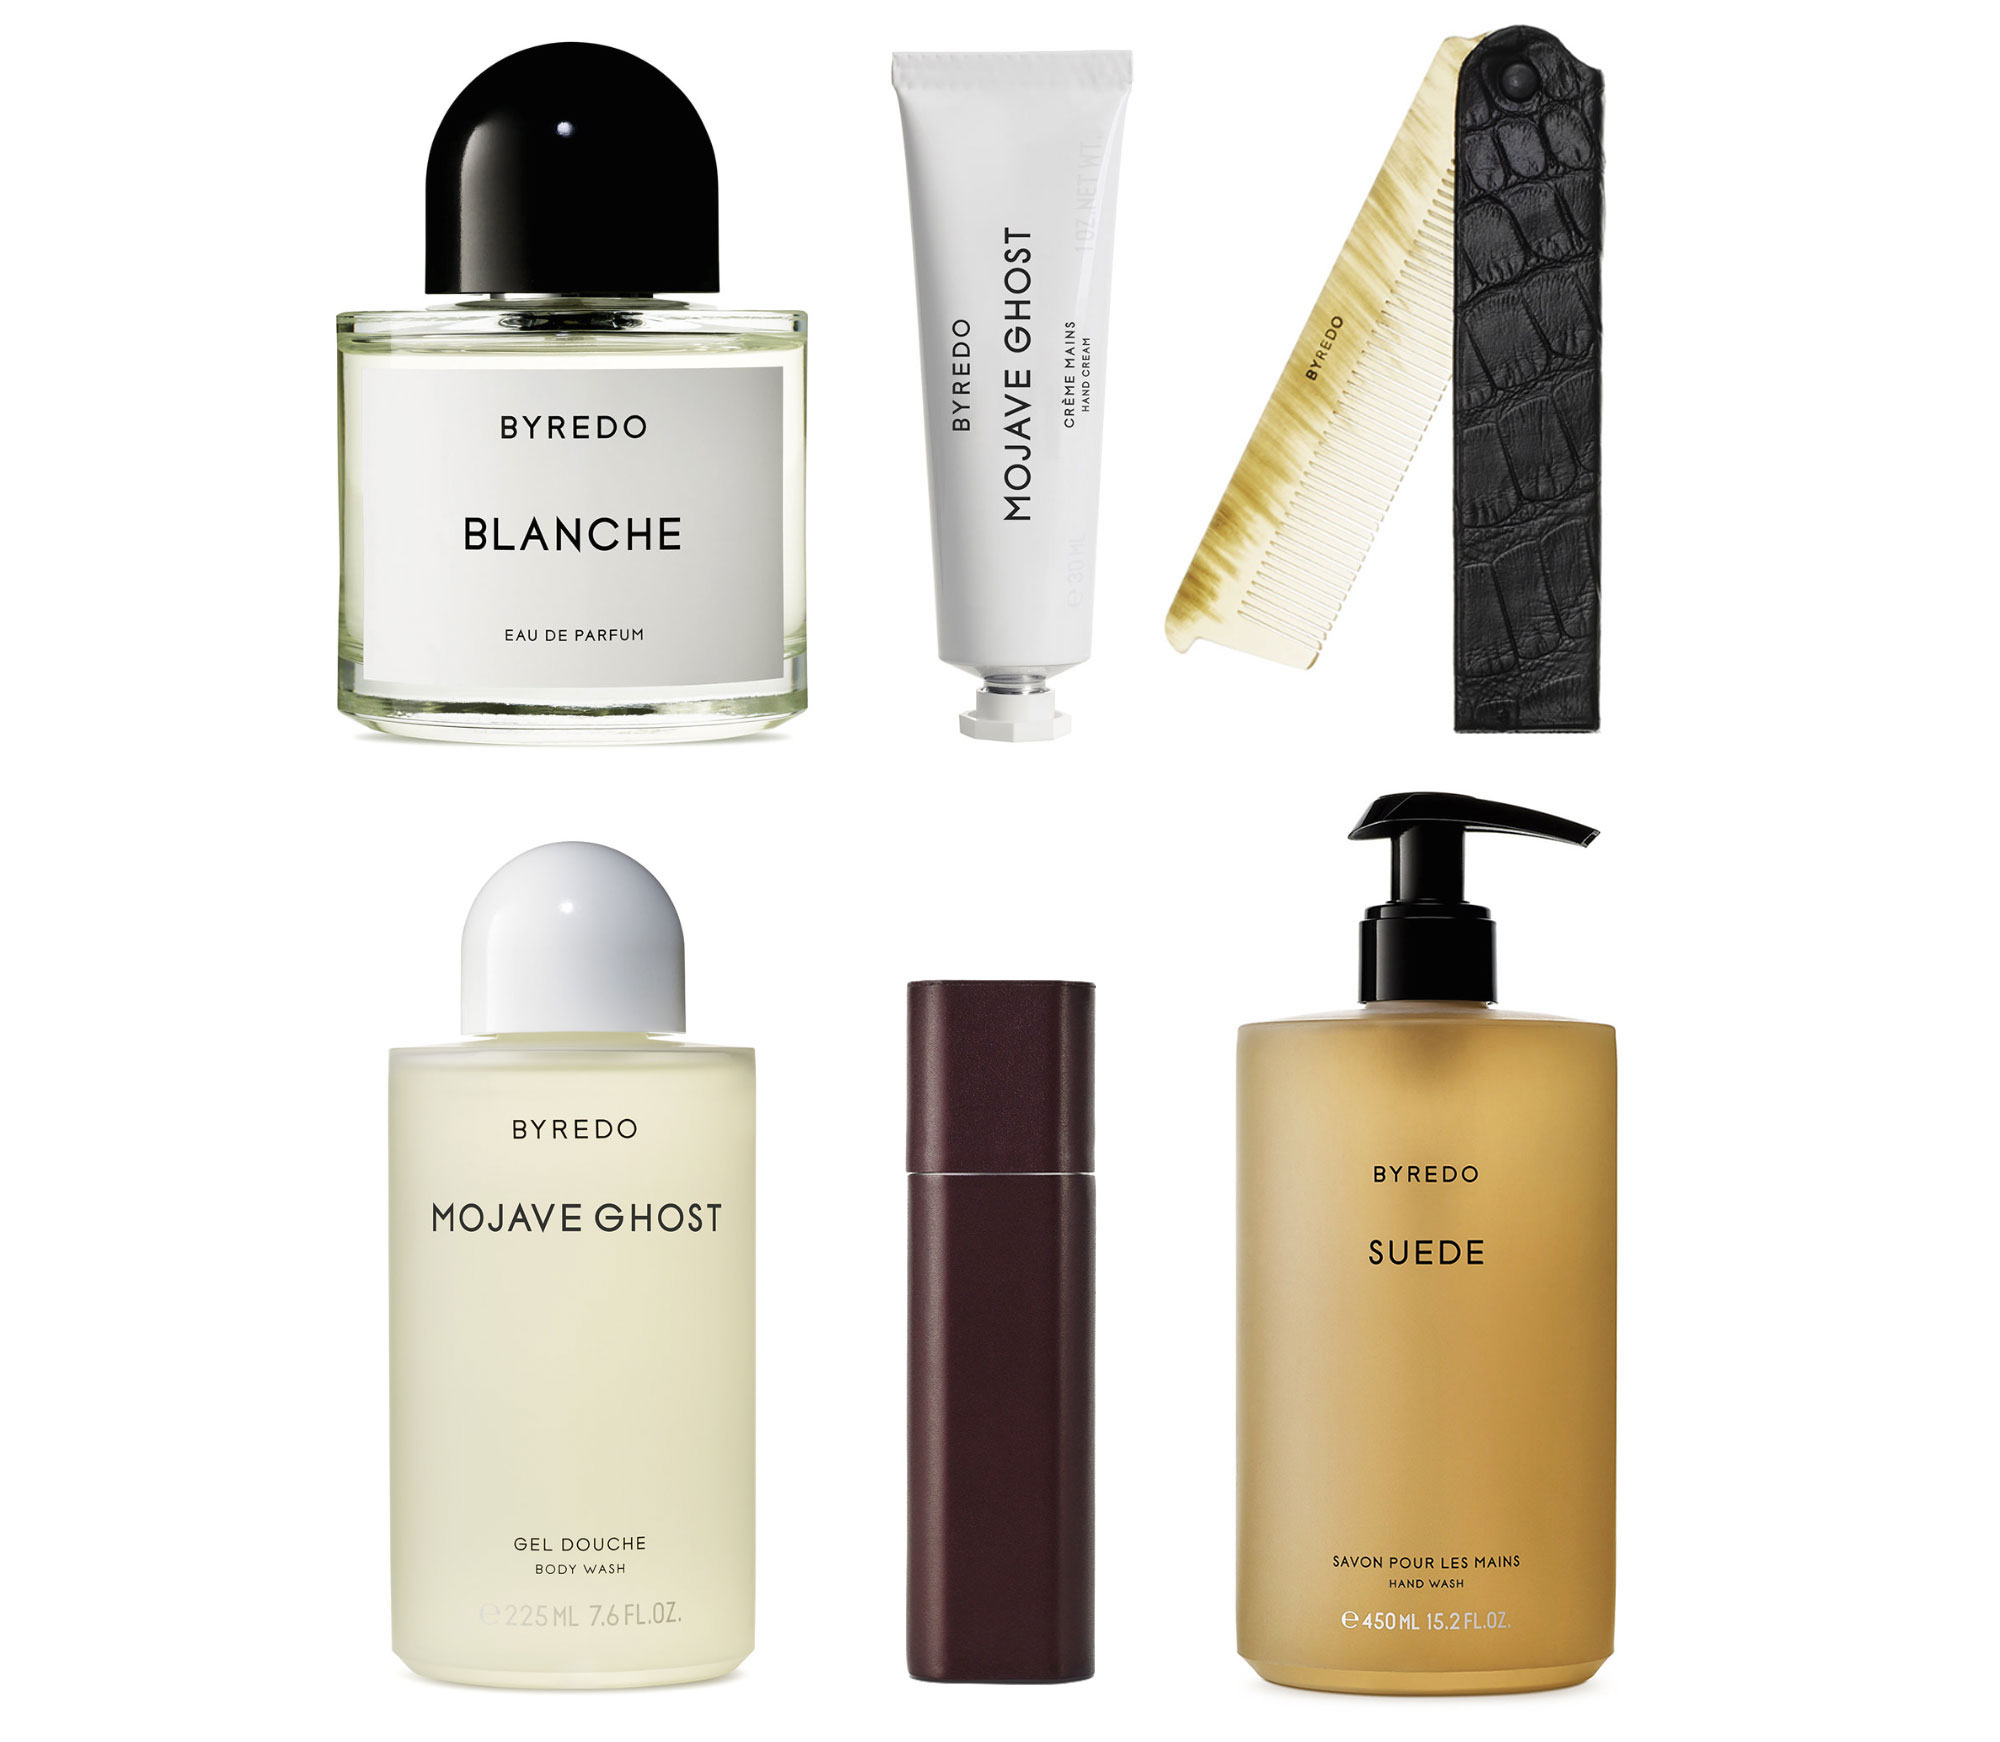 Byredo-products